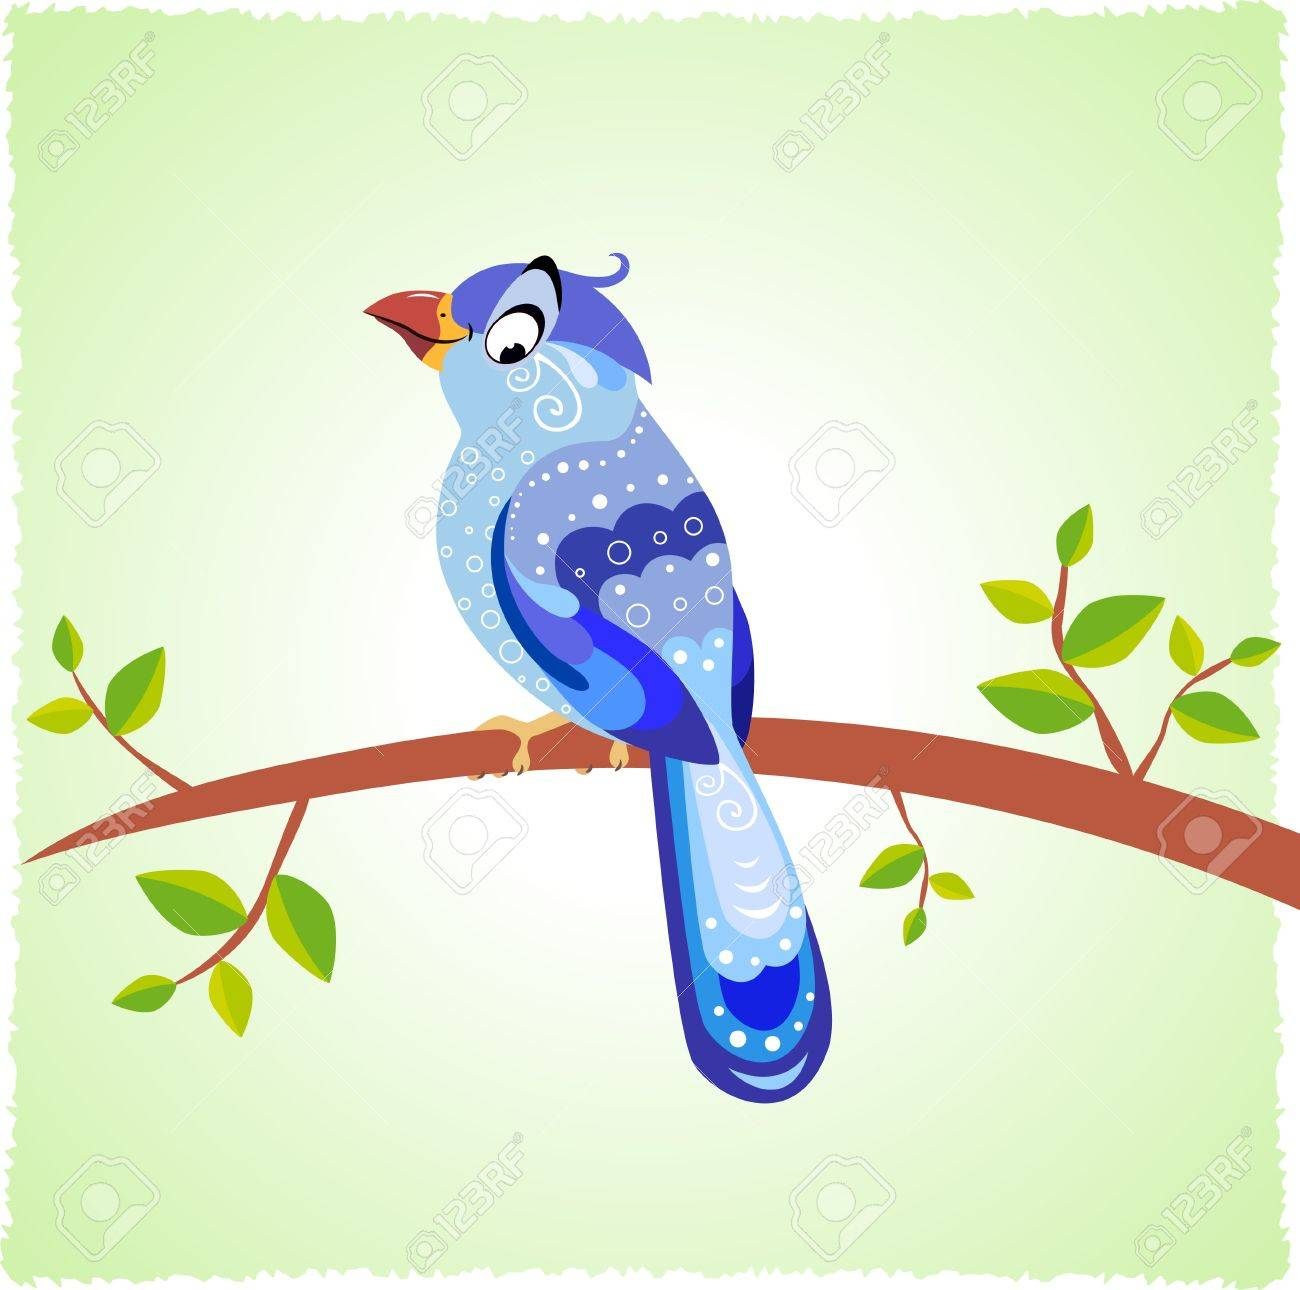 bird blue Stock Photo - 20842314